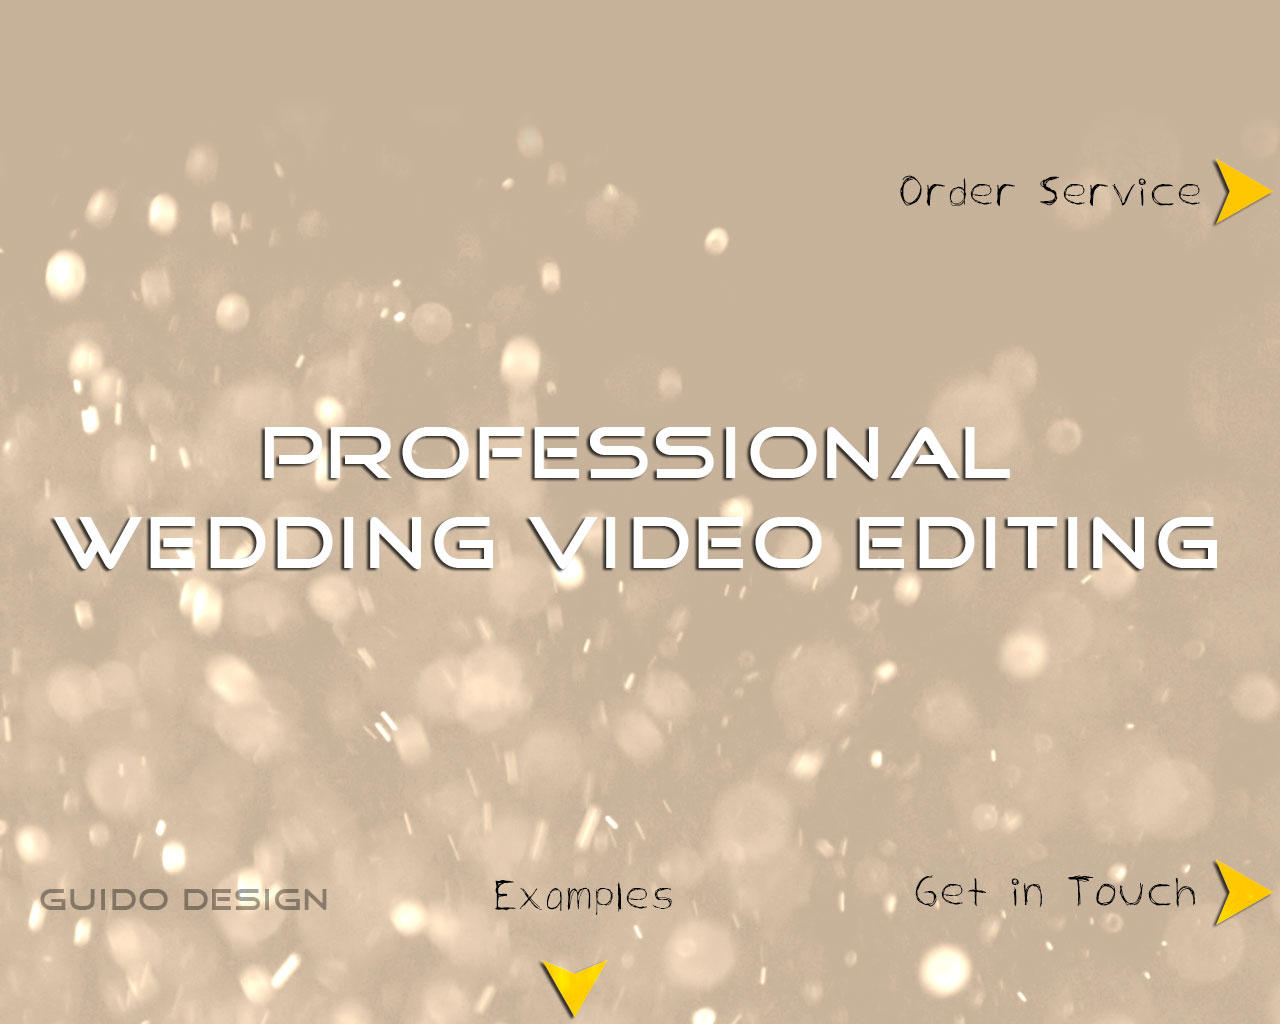 Professional Wedding Video Editing by GuidoDesign - 66277